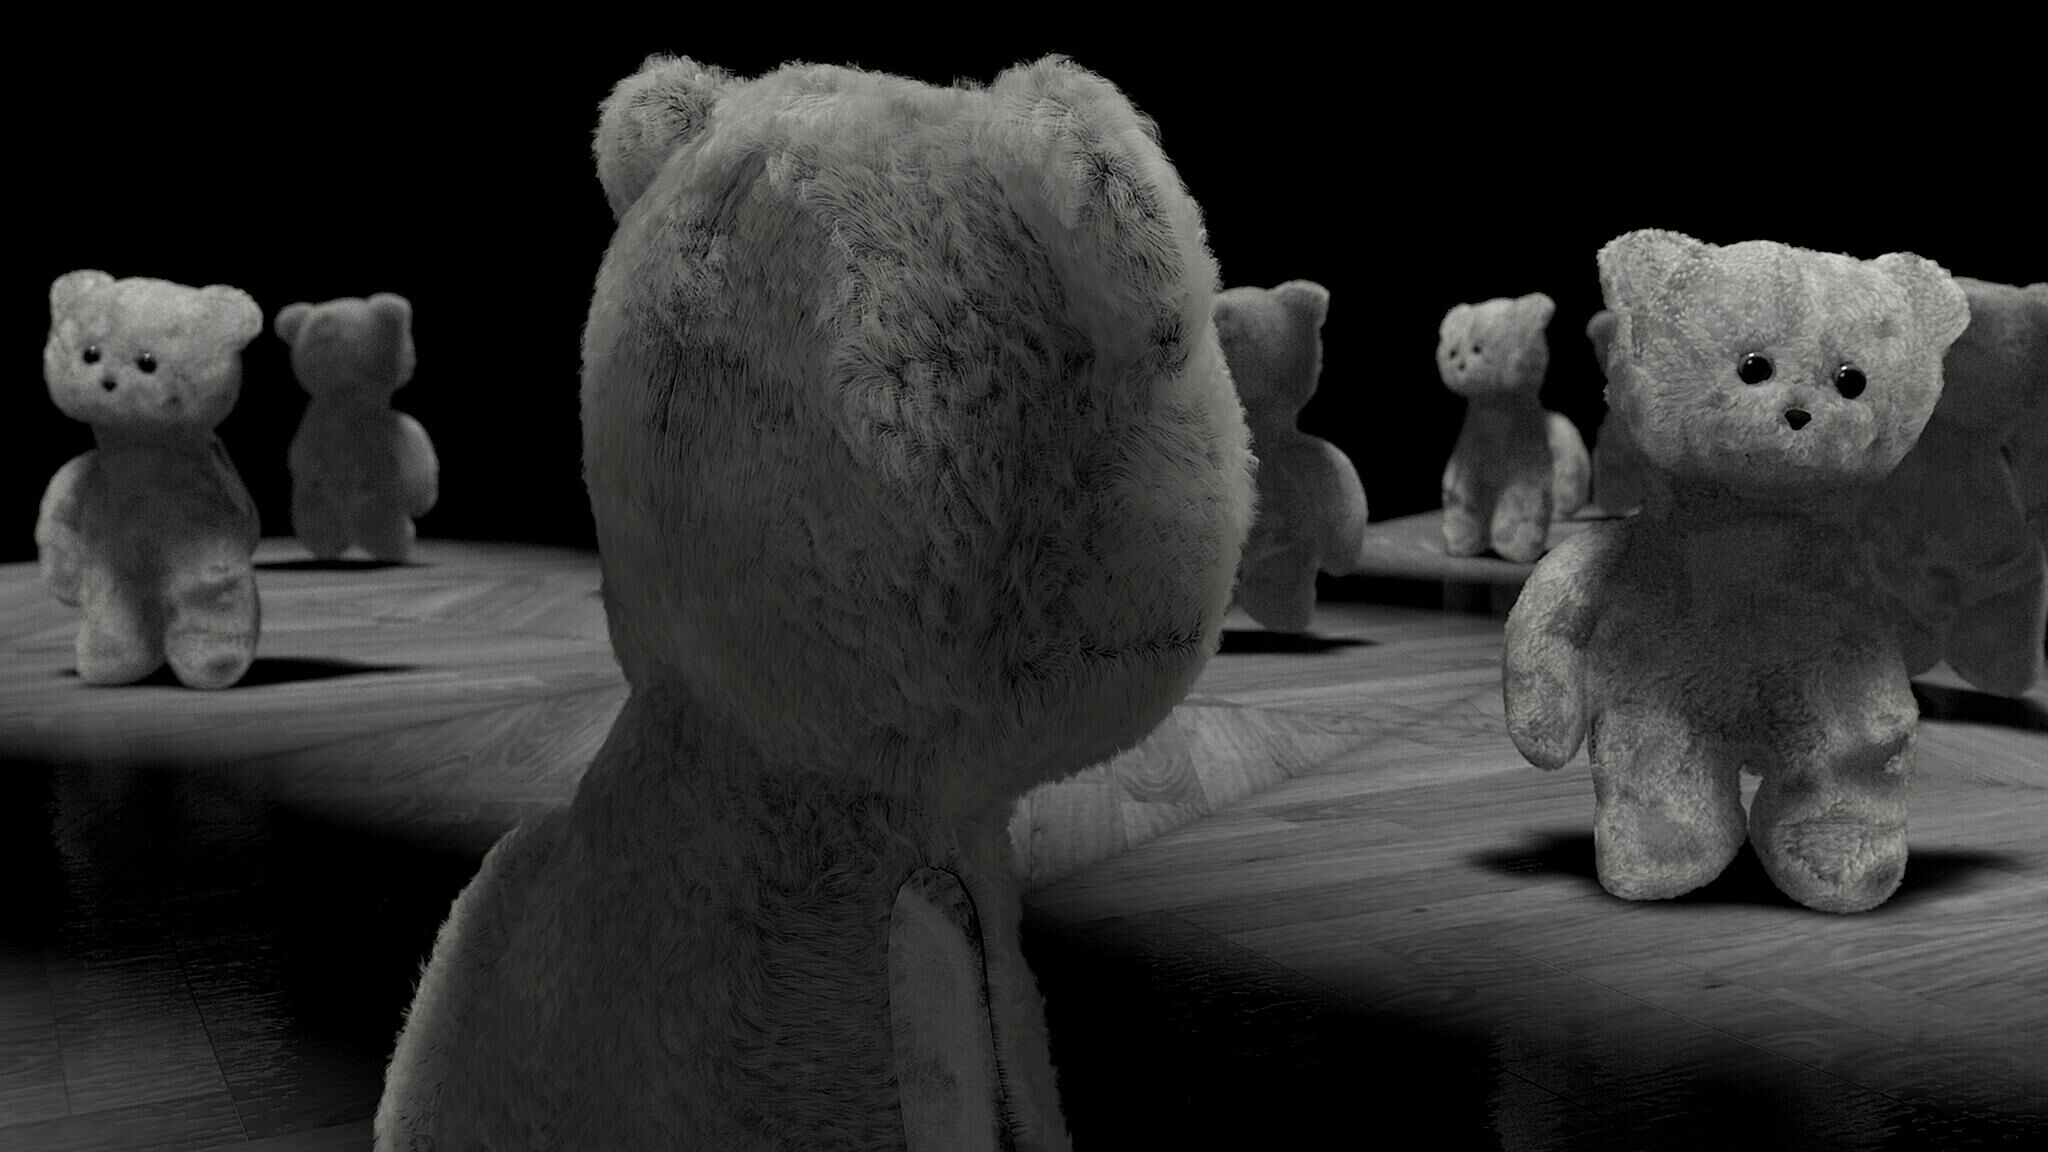 Film still of bears.